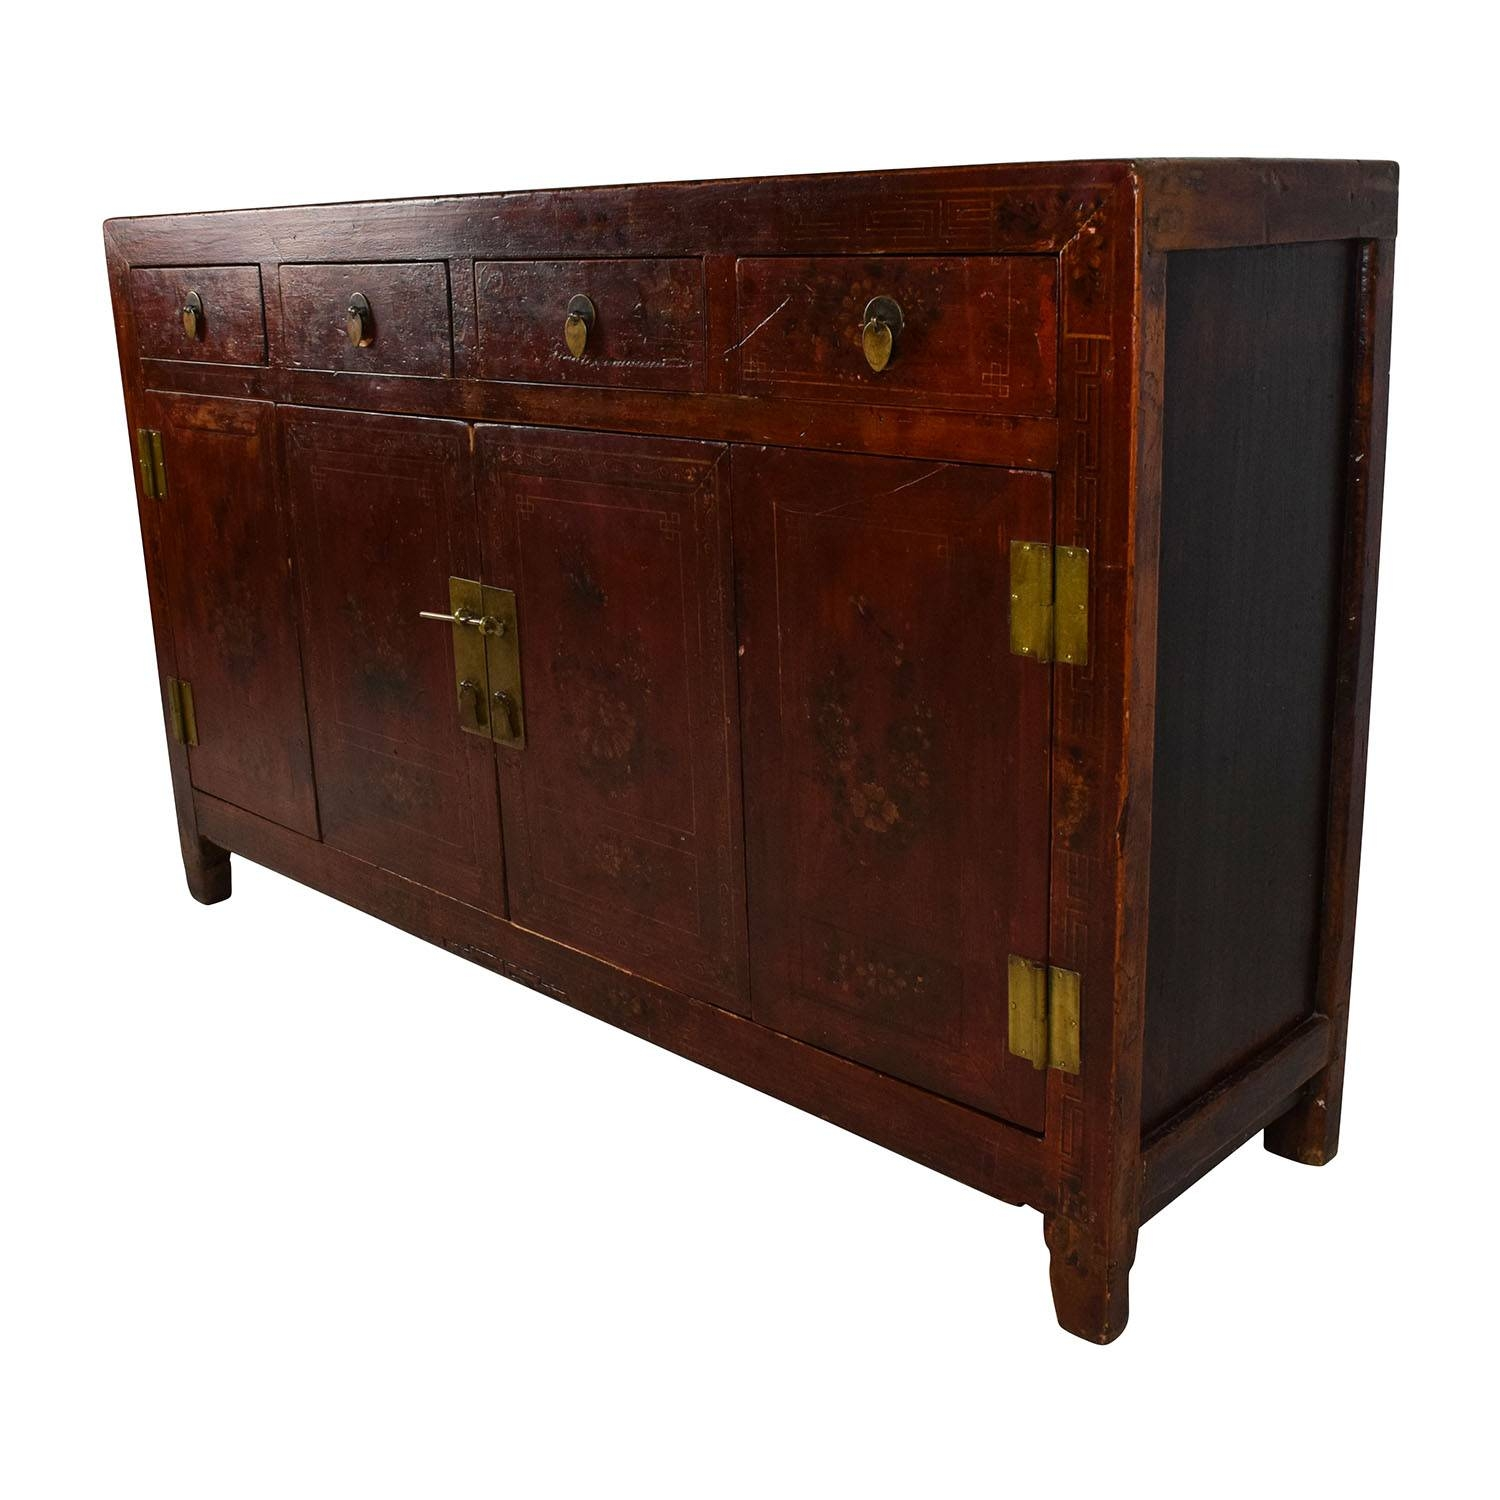 66% Off - Solid Wood Southeast Asian Credenza / Storage inside Asian Sideboards (Image 6 of 30)